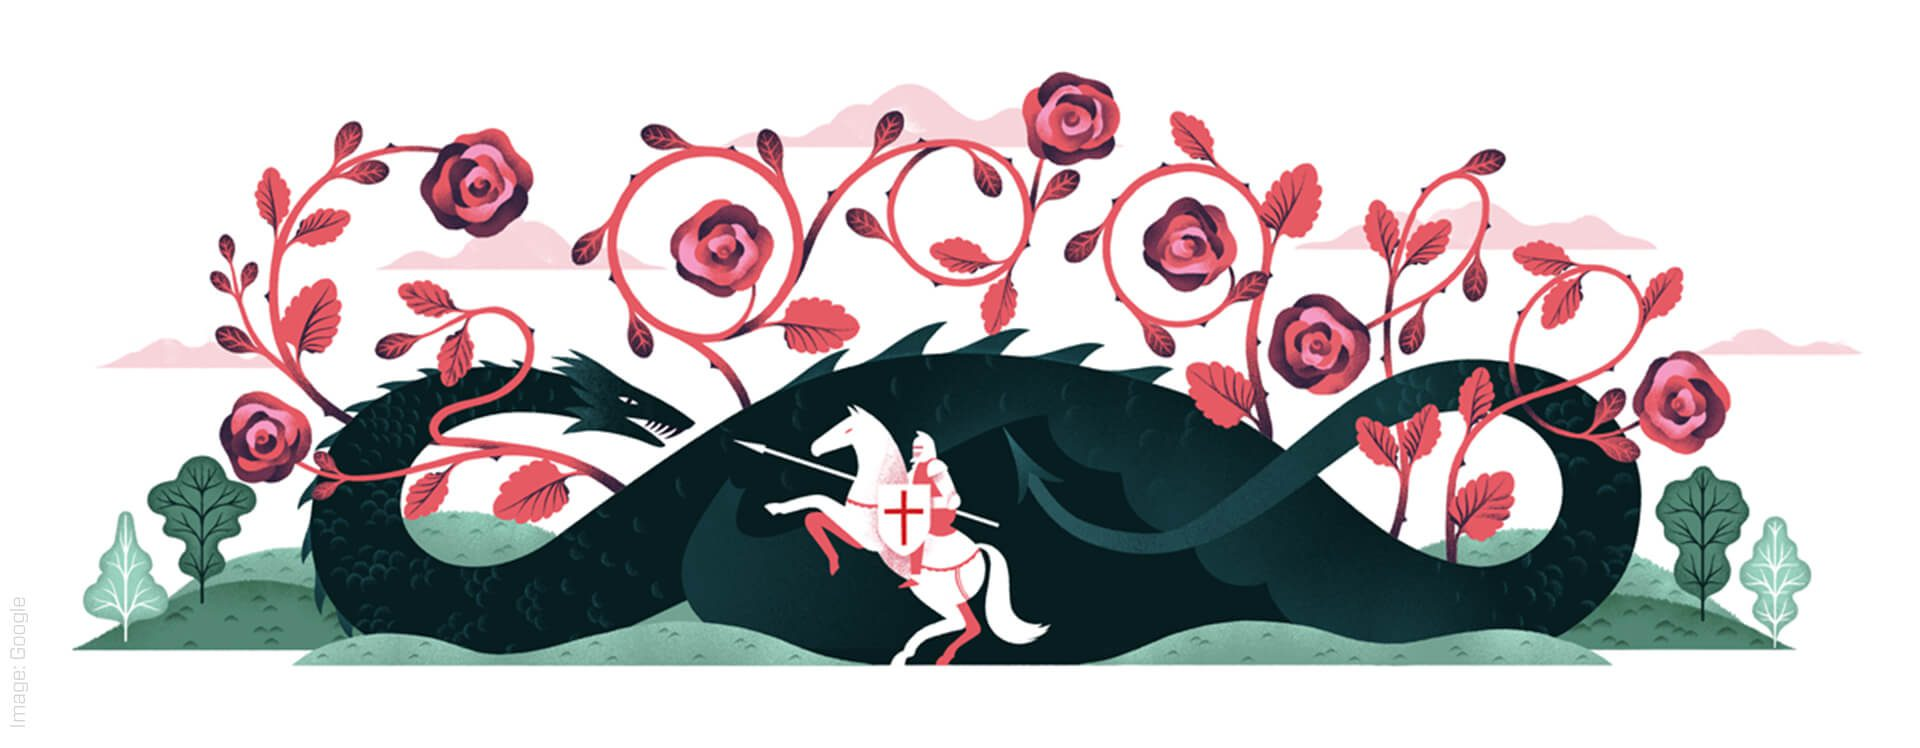 Illustration of a knight fighting a dragon with roses coming out of the dragon